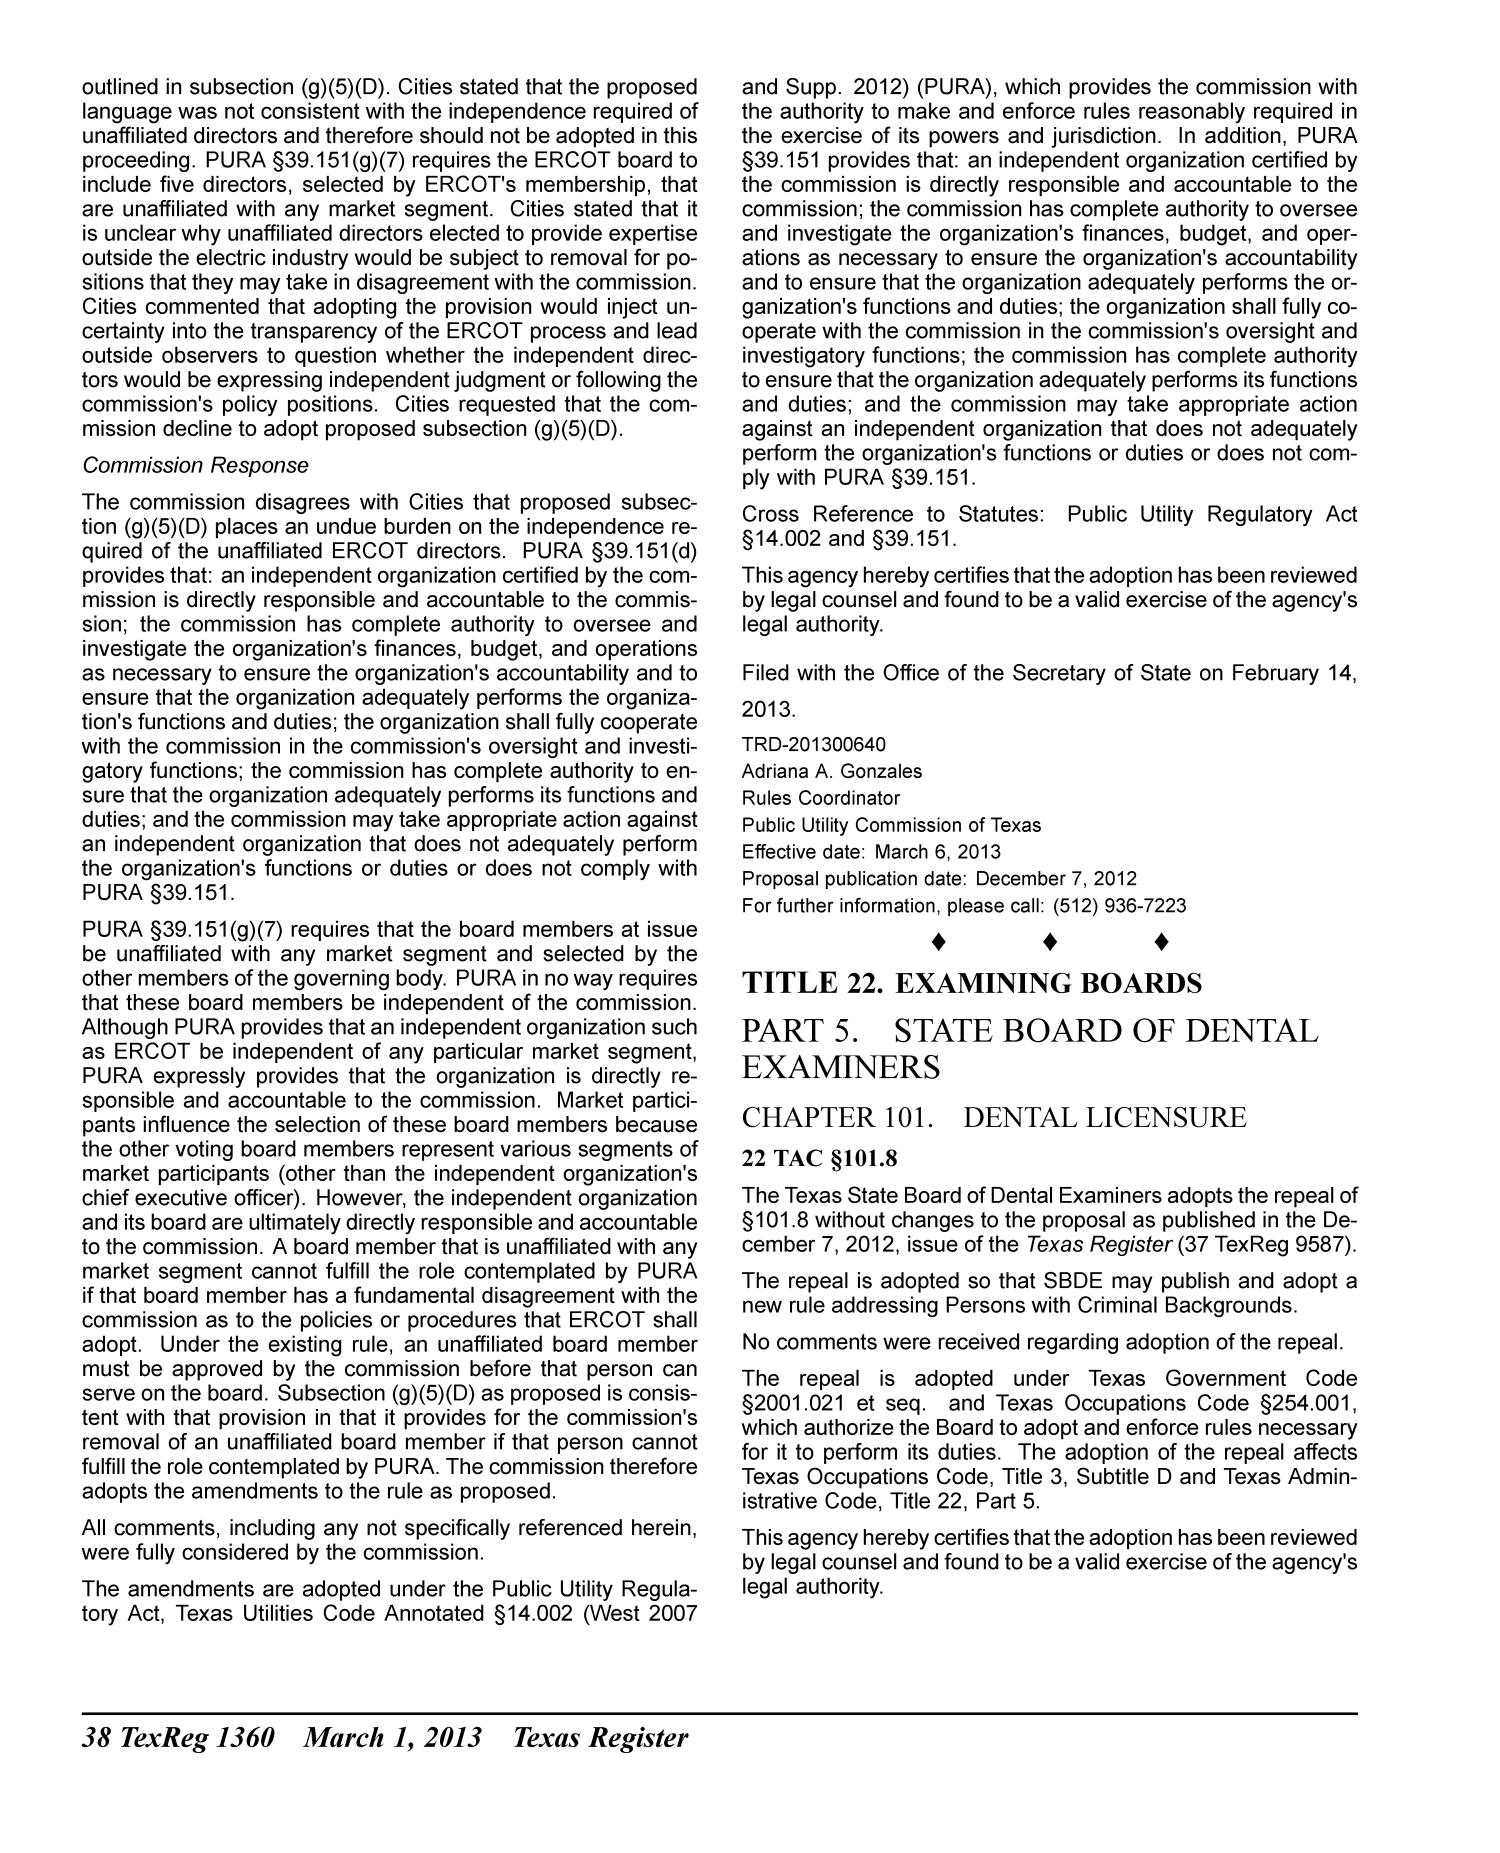 Texas Register, Volume 38, Number 9, Pages 1269-1452, March 1, 2013                                                                                                      1360